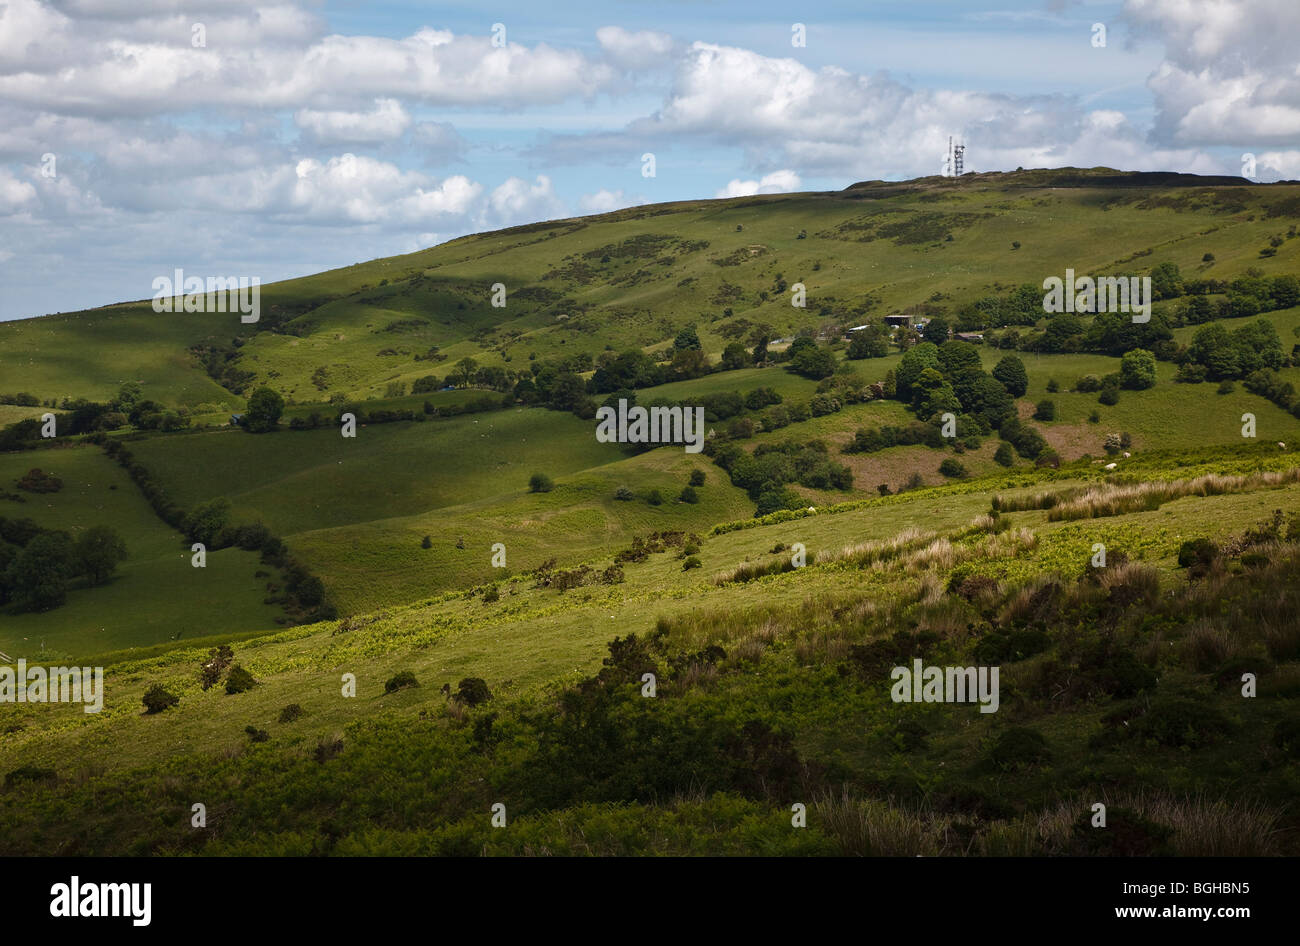 Abdon Burf, Brown Clee Hill, Shropshire - Stock Image